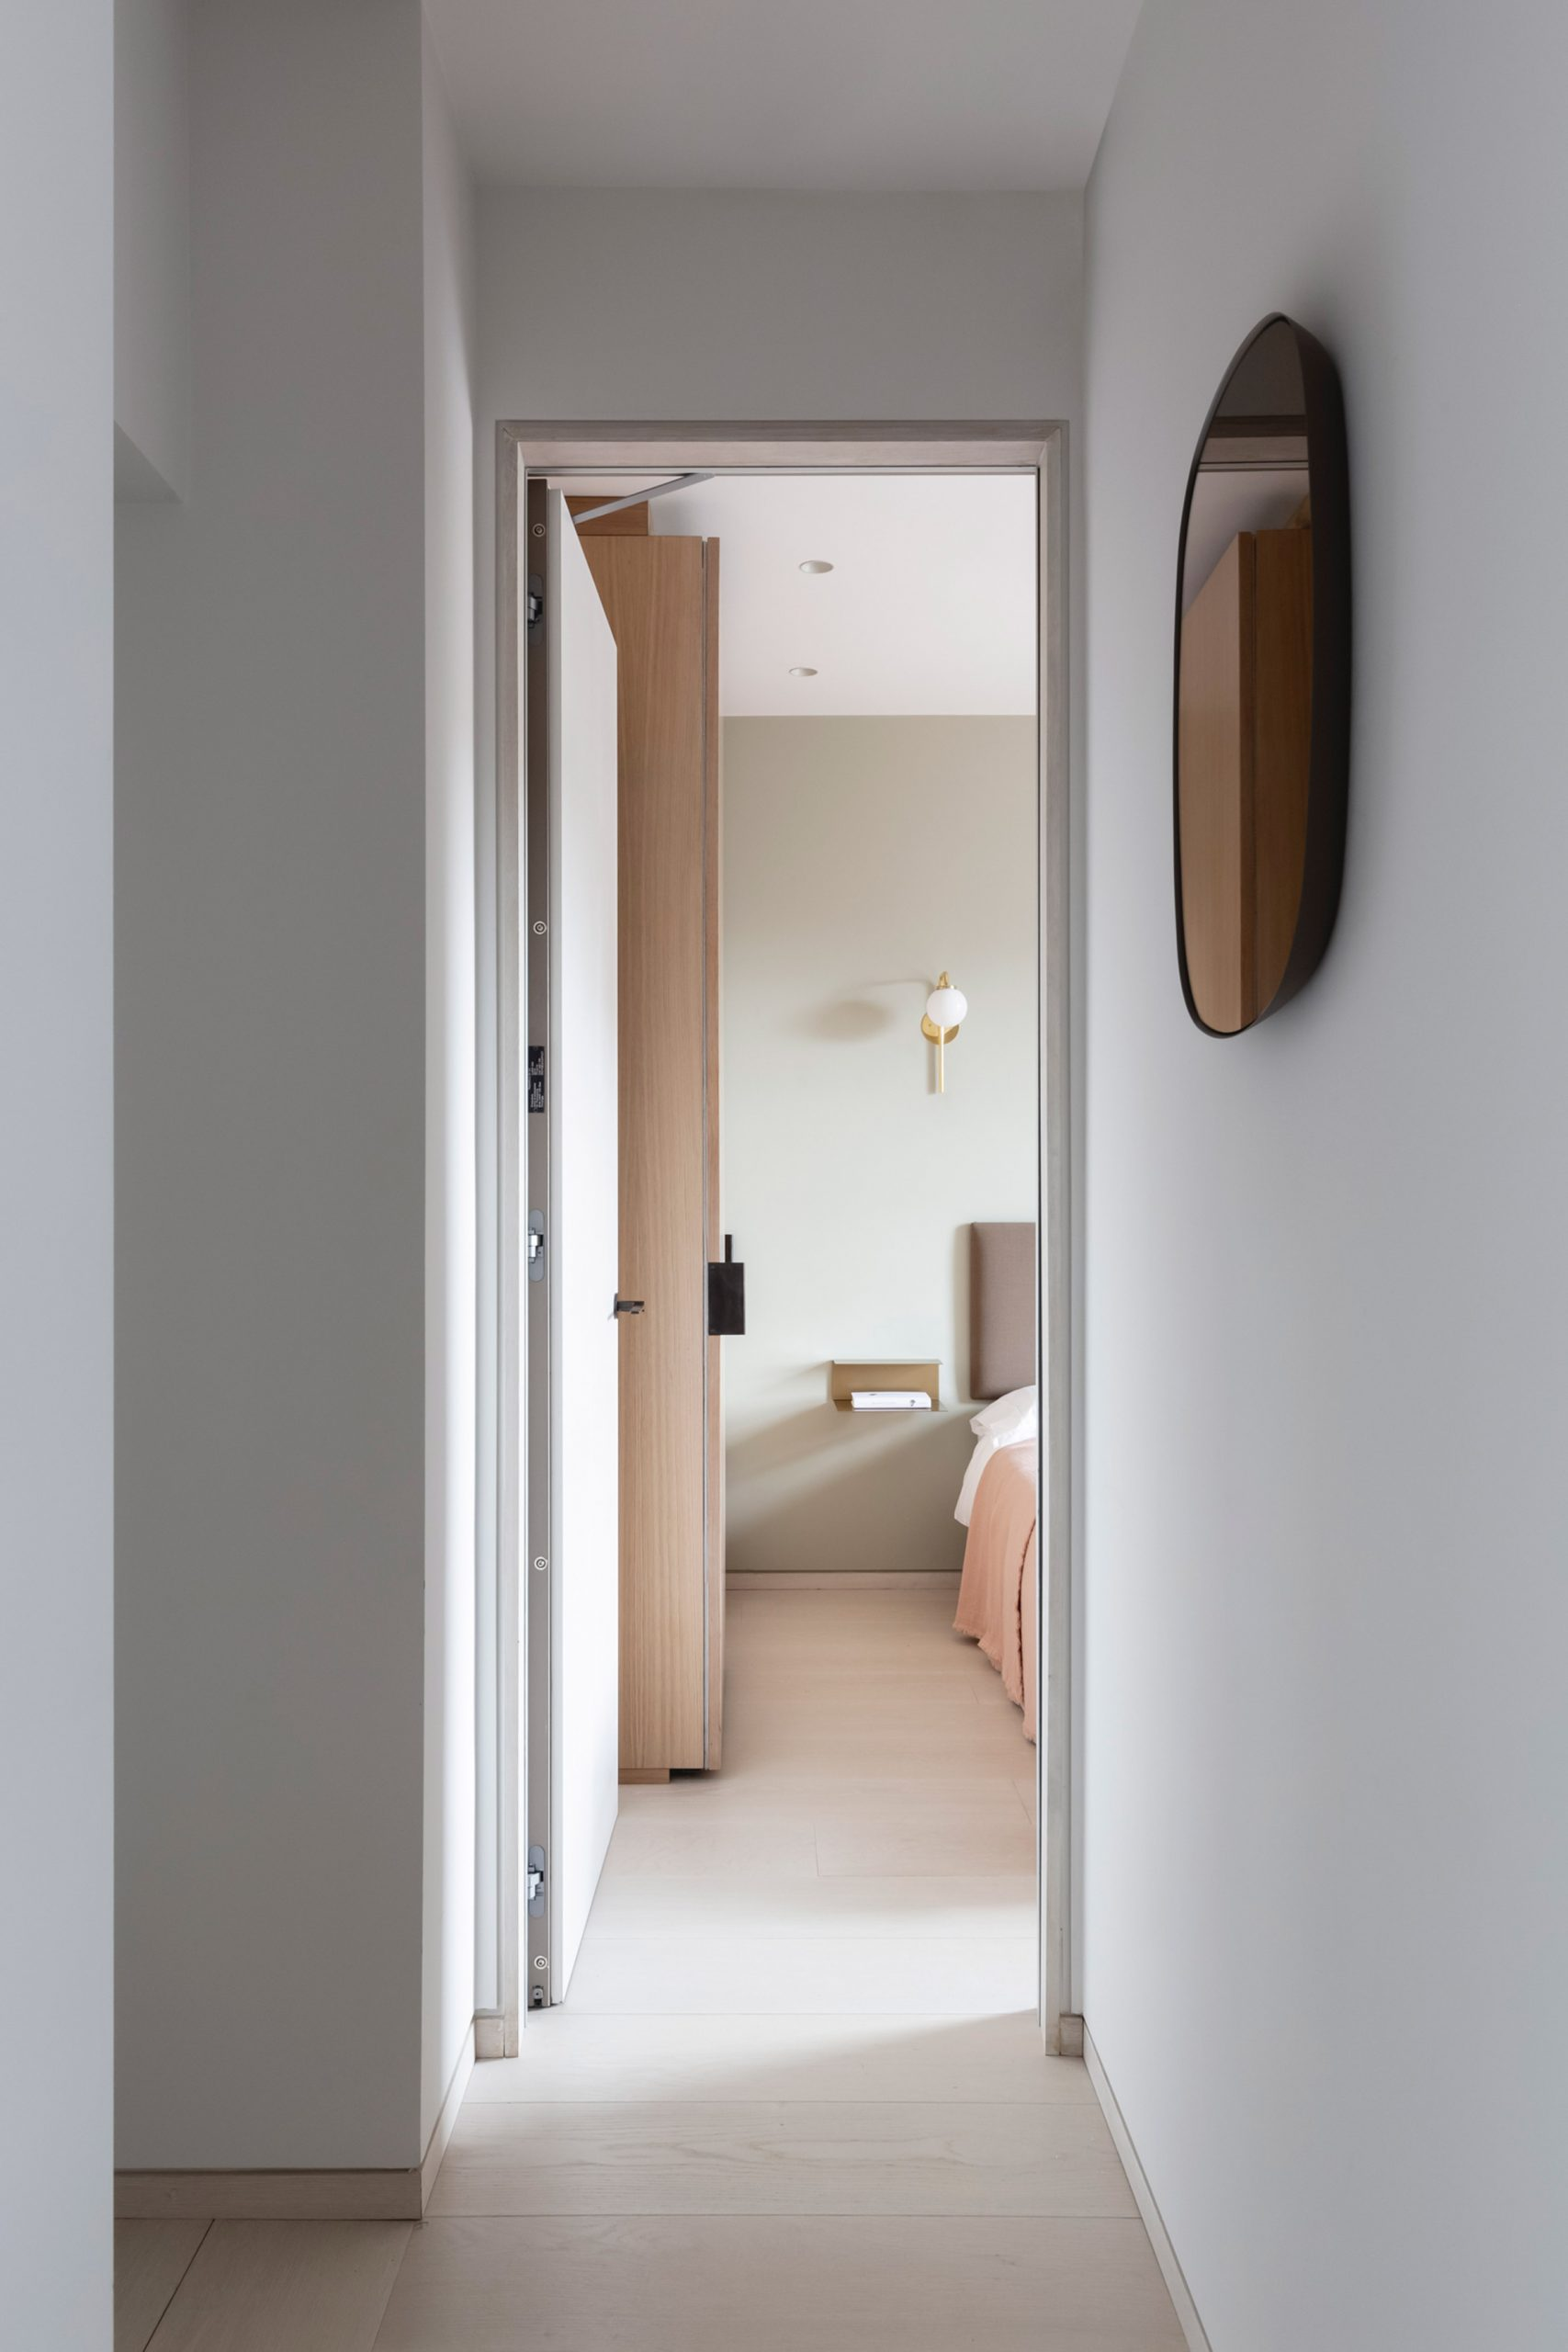 Hallway view into bedroom of Mayfair pied-à-terre by MWAI